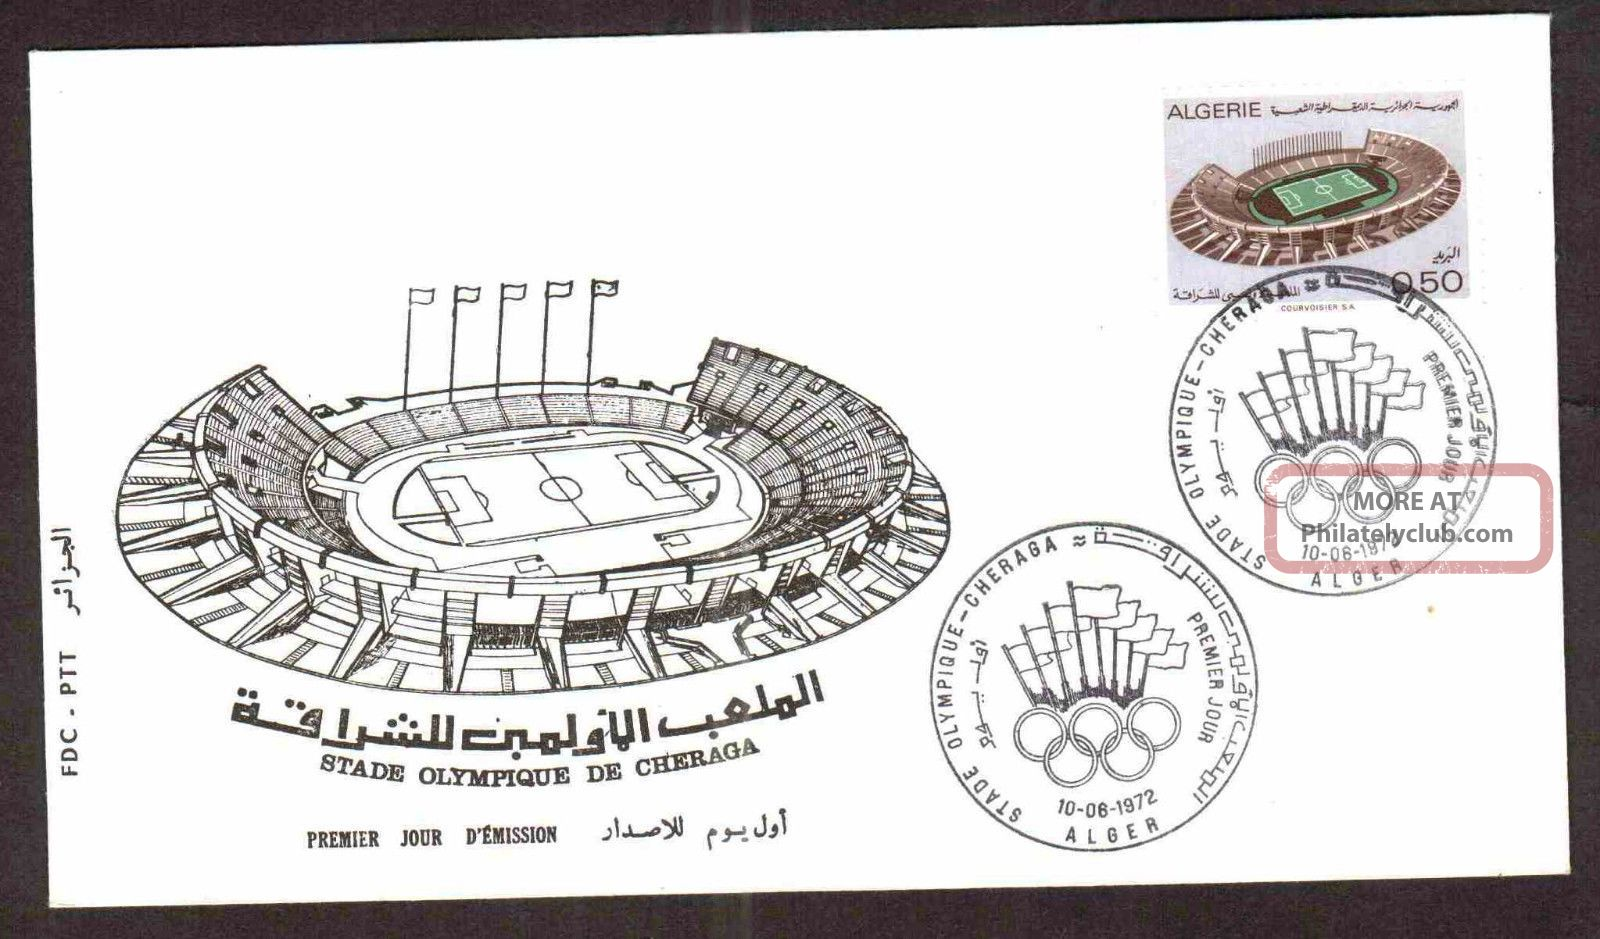 Algeria 1972 - Olympic Stadium (cheraga),  Scott 482 - Fdc,  Topical Cancel Sports photo